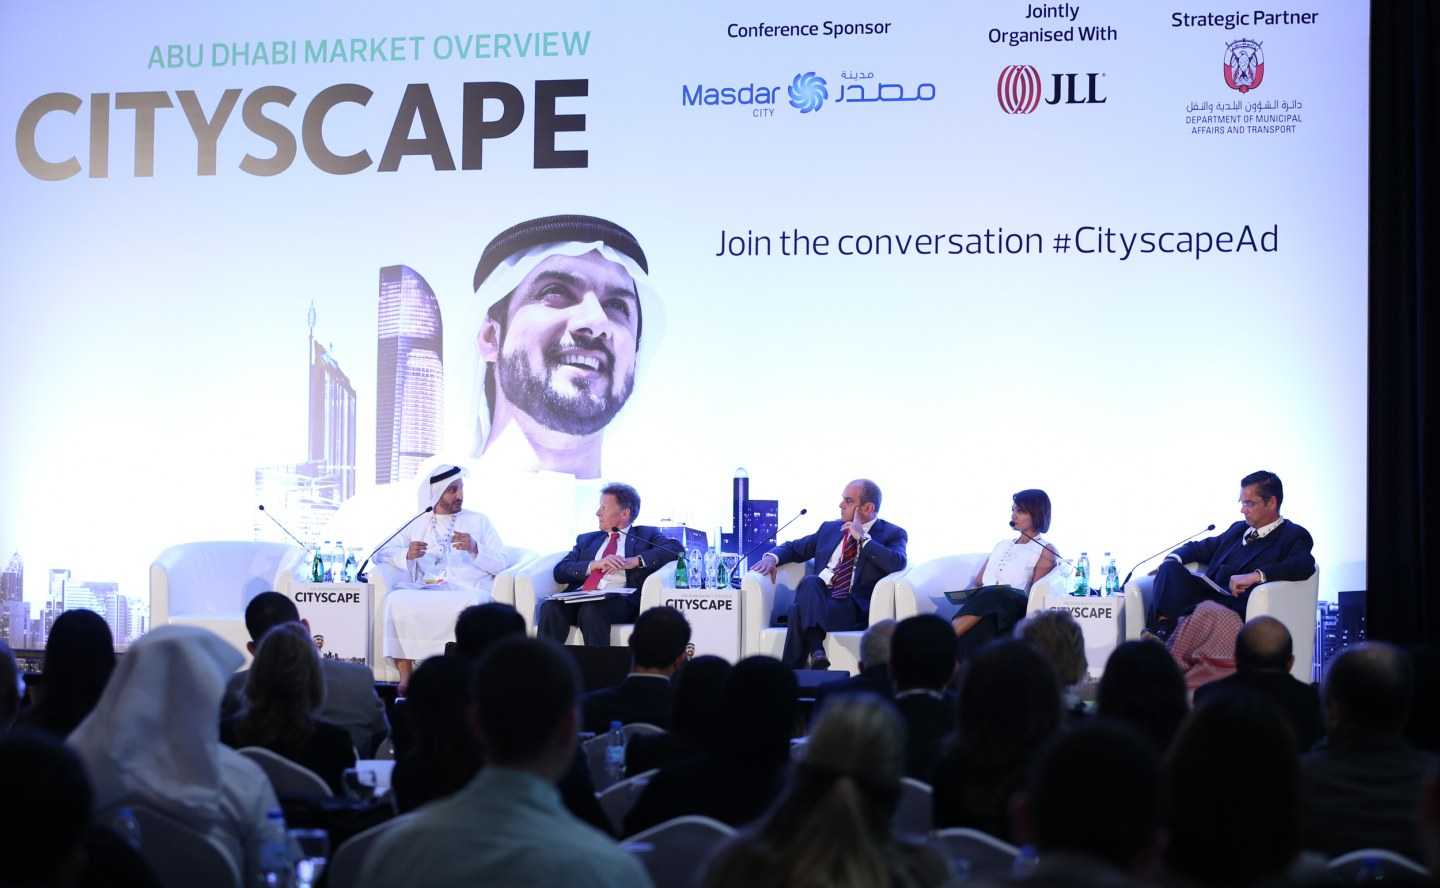 Experts in a panel discussion during Cityscape Abu Dhabi 2016